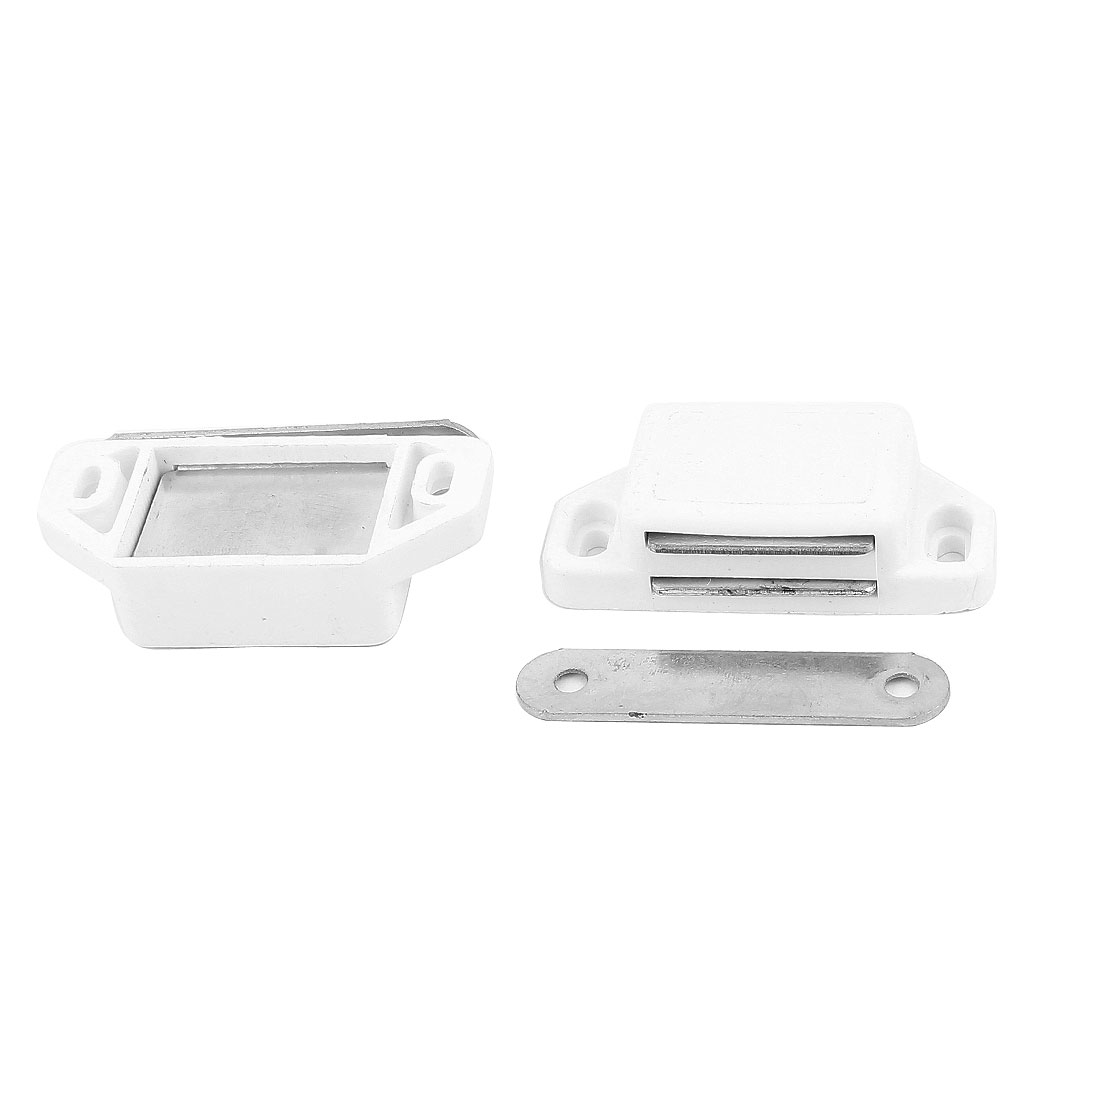 2 Pcs White Plastic Shell Metal Plate Cabinet Door Magnetic Latch Catch